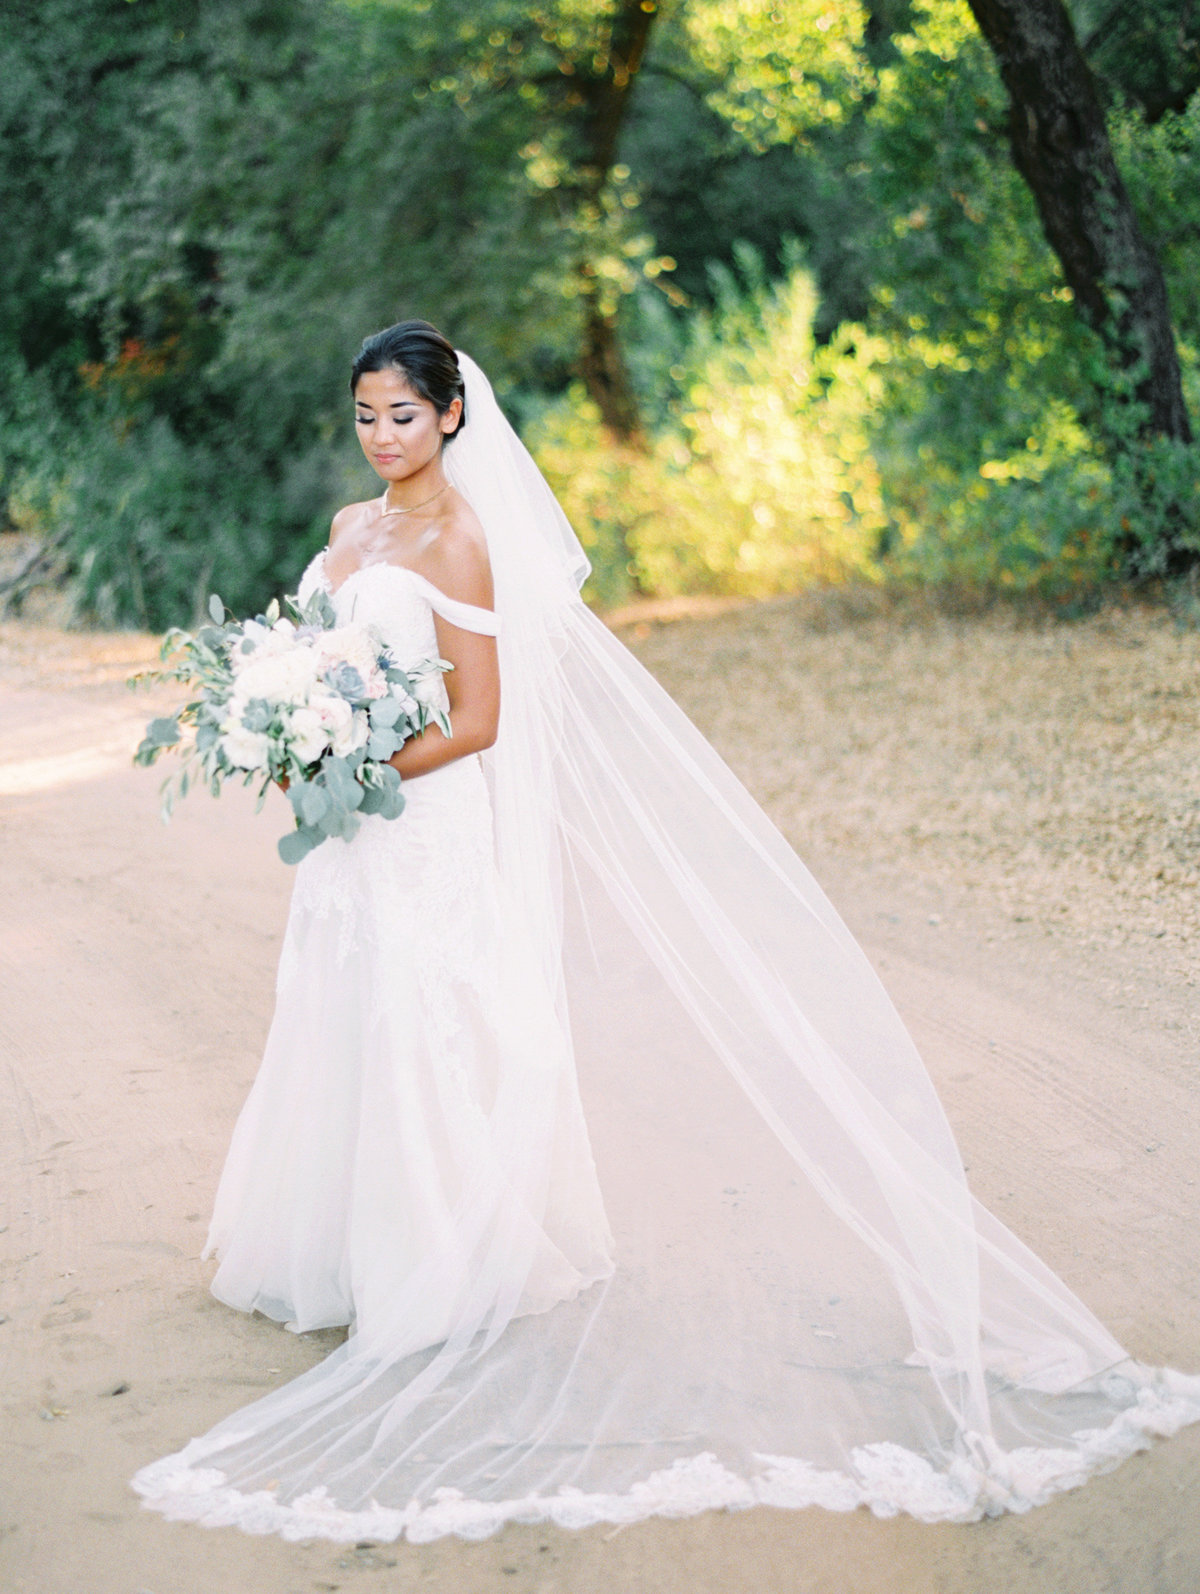 Babsie-Ly-Photography-San-Diego-California-Rancho-Santa-Fe-Wedding-Film-Photographer-017